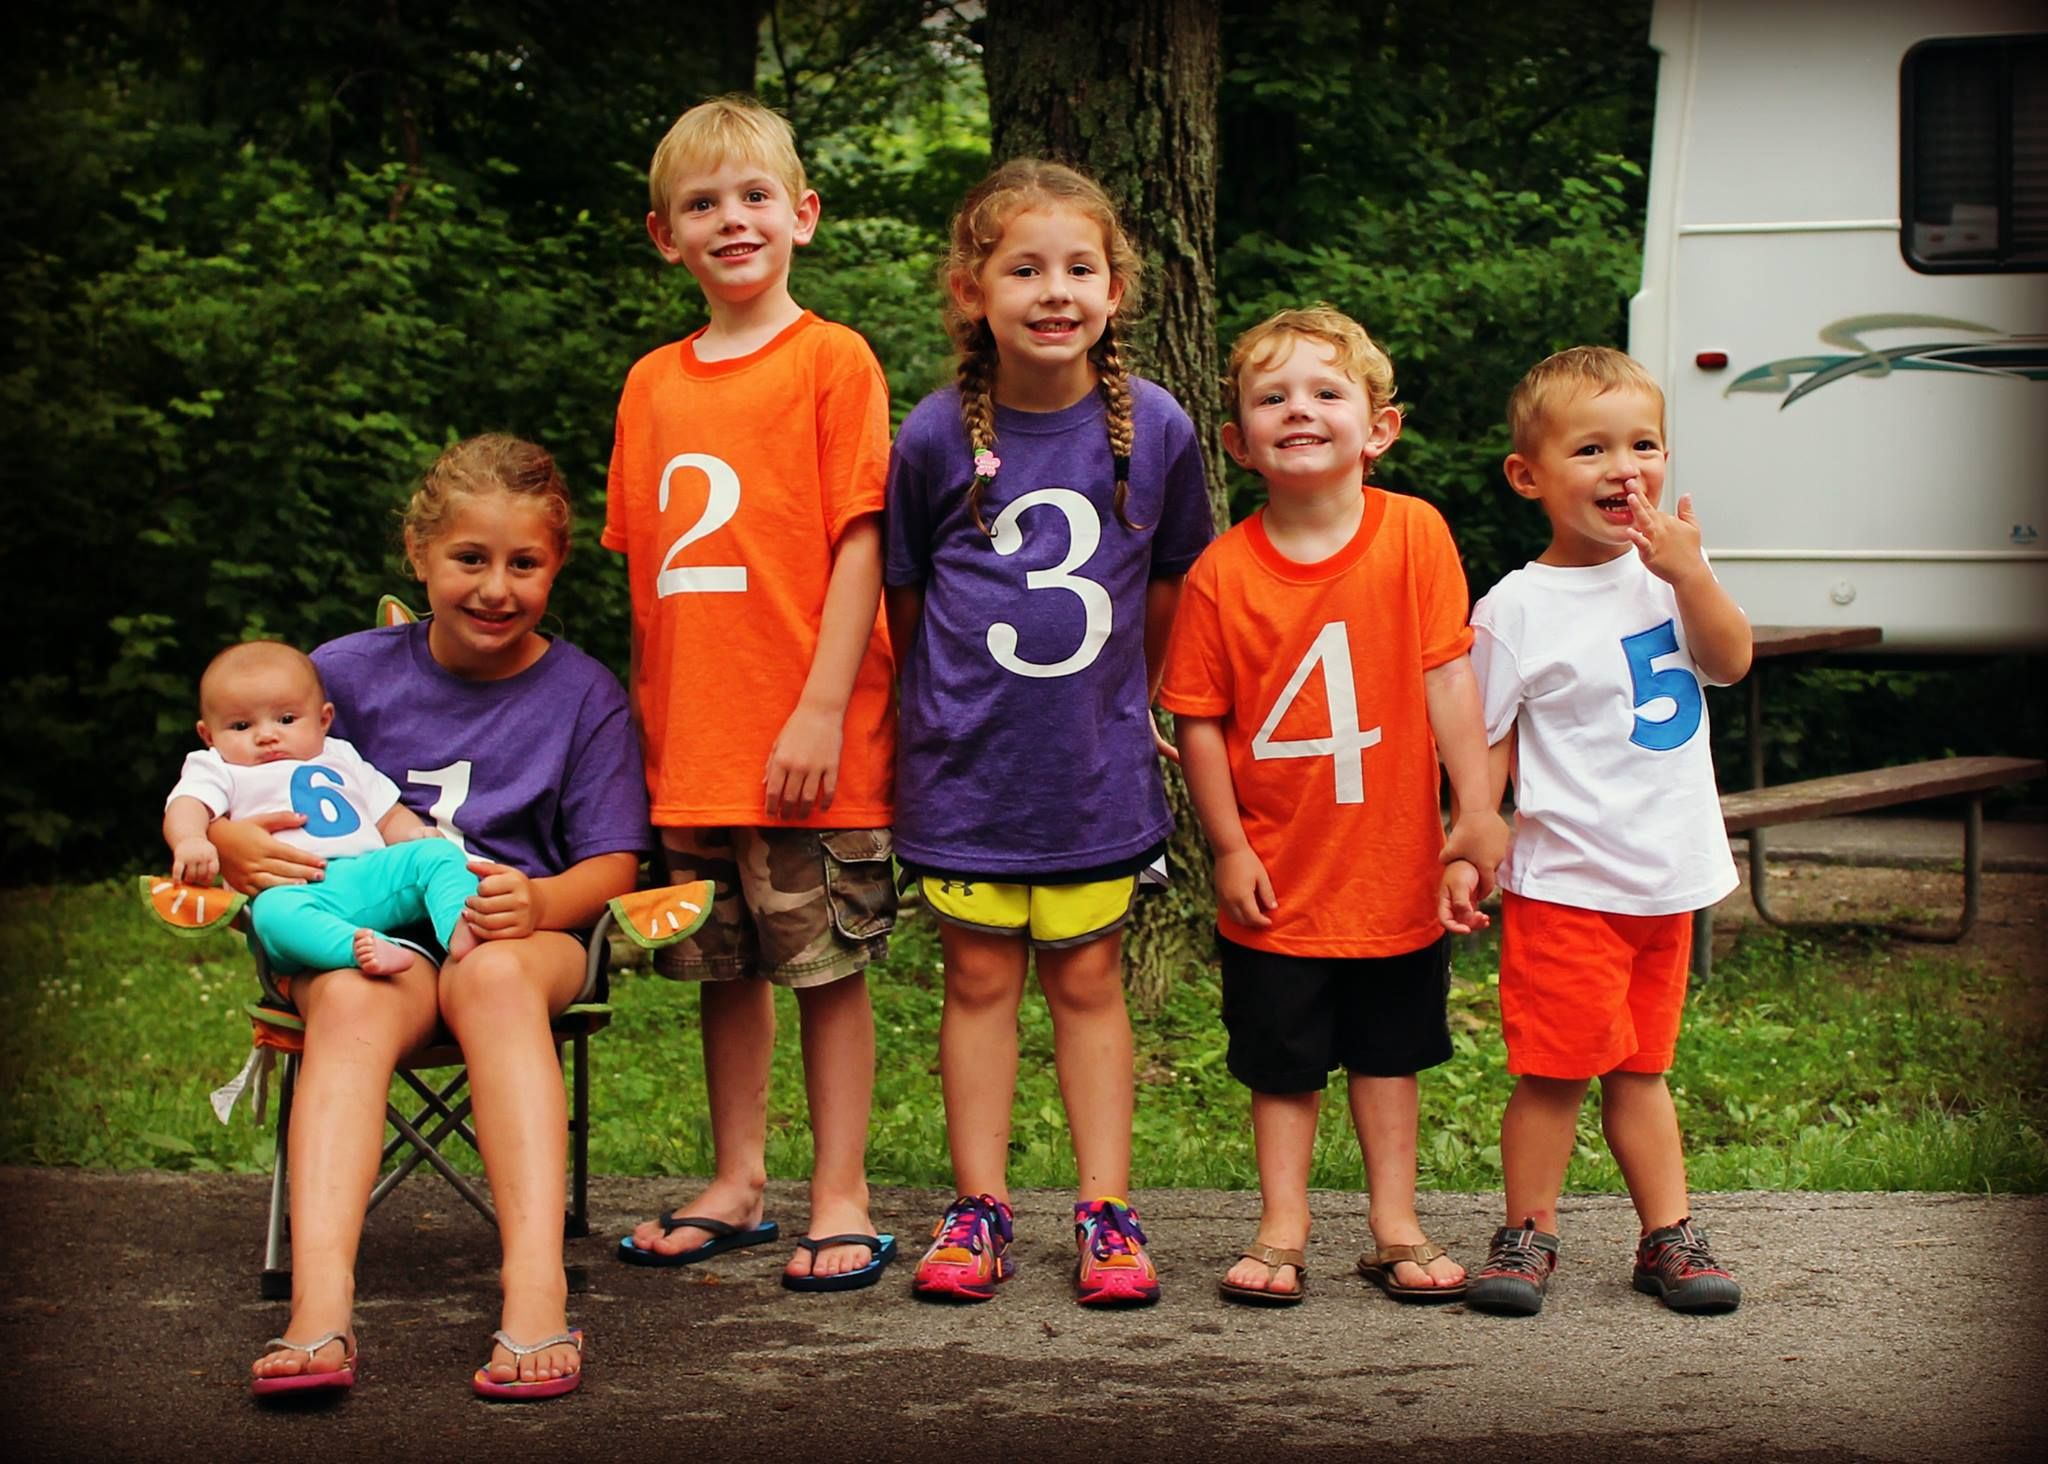 Cousin photo...each kid has a shirt with their birth order number on ...